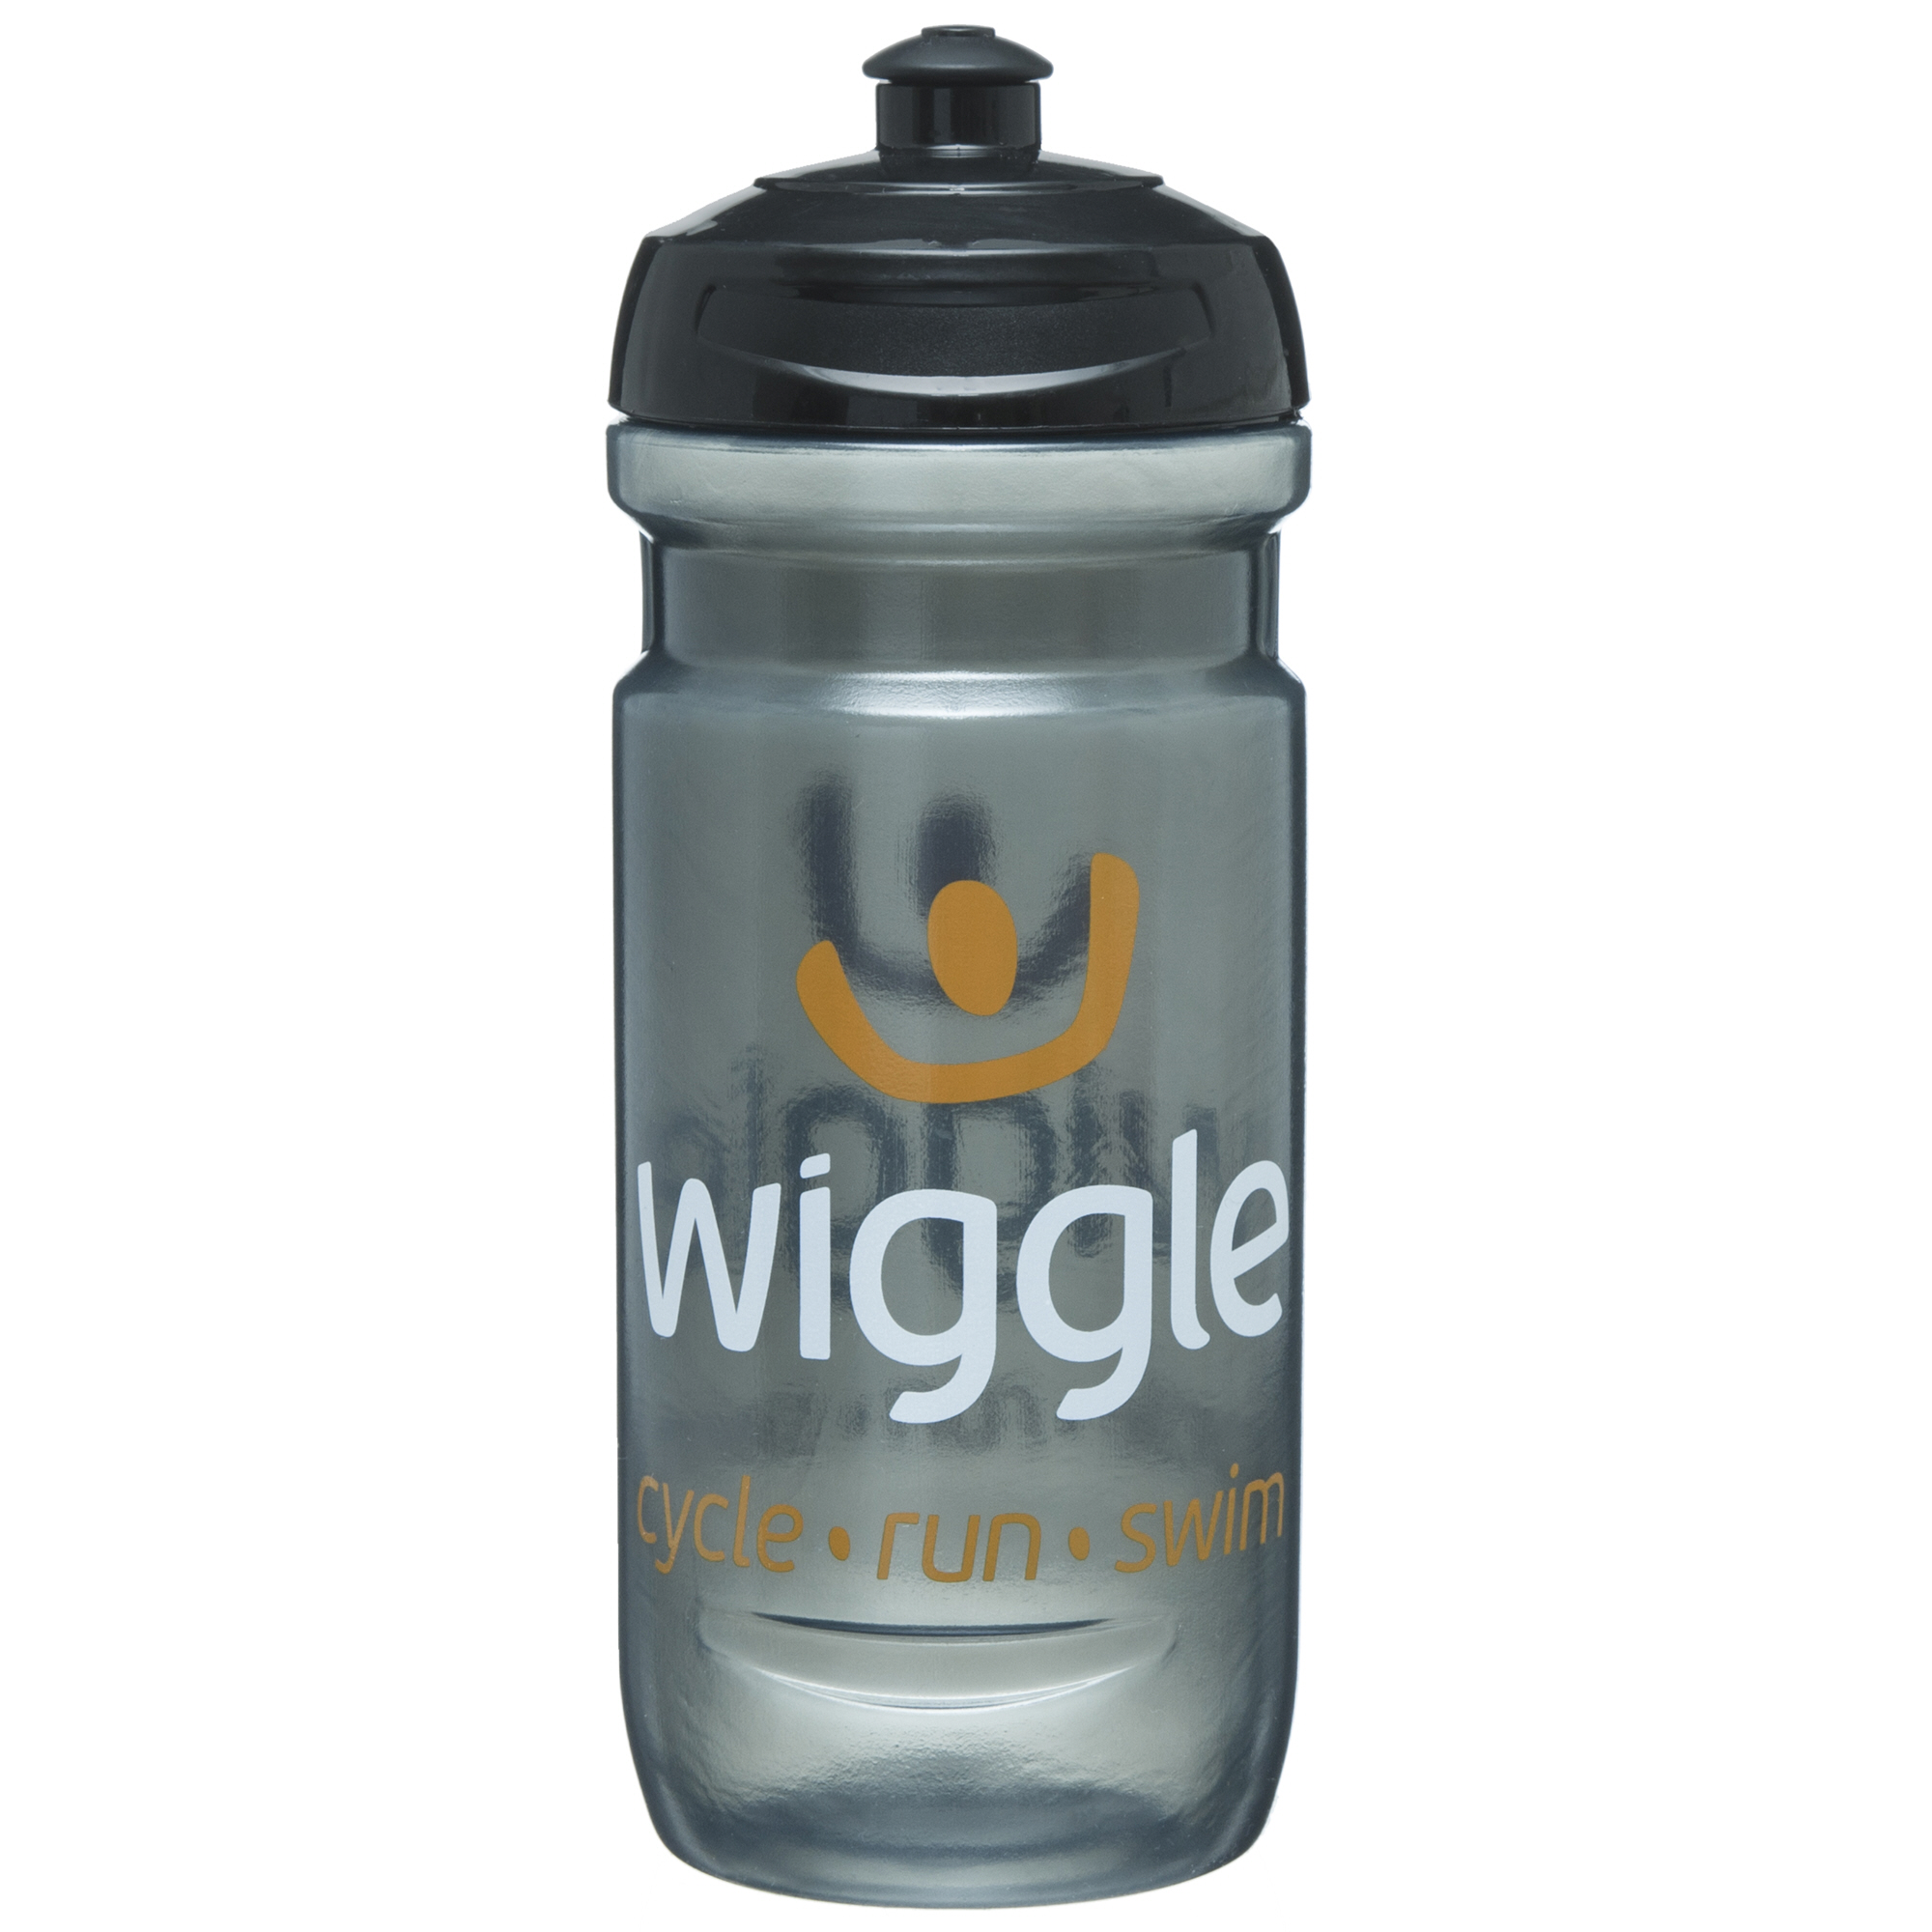 Wiggle Water Bottle 600ml | Bottles